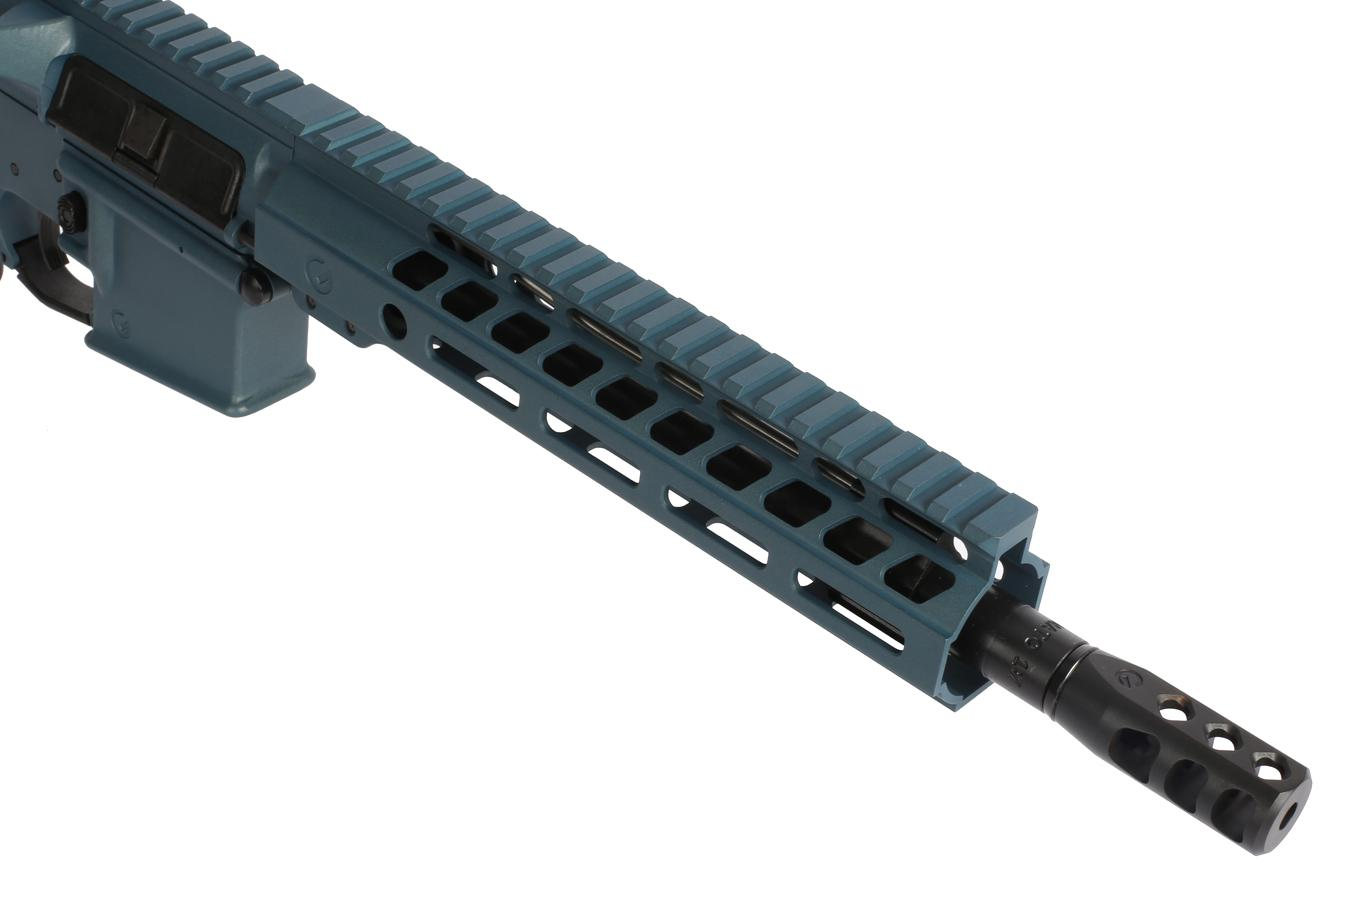 The Ghost Firearms AR 15 Pistol with 10.5 inch barrel comes with an axe brake muzzle brake